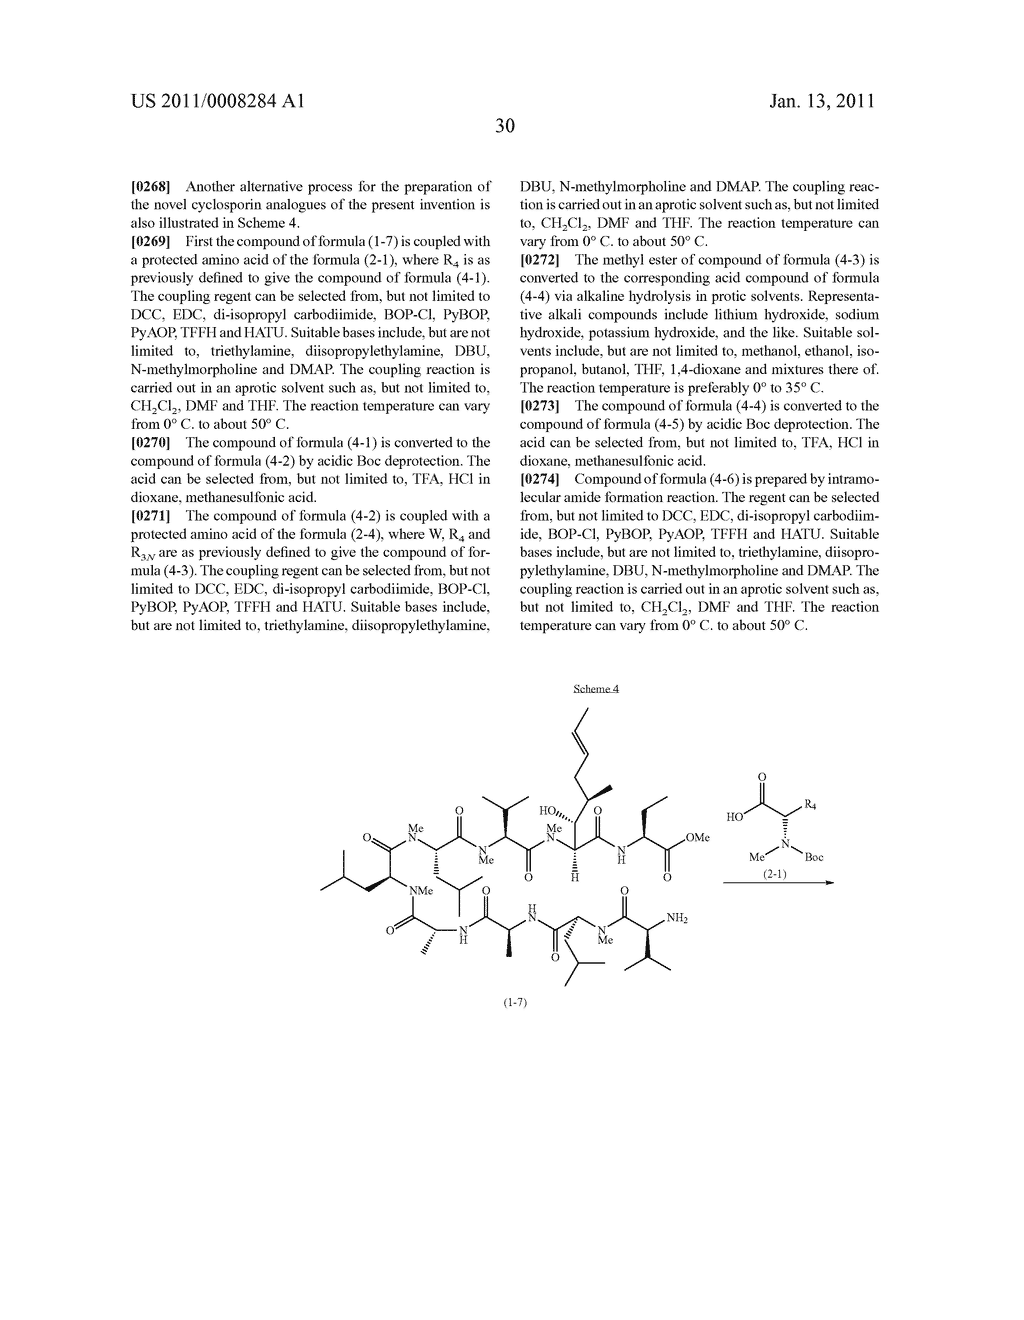 NOVEL CLYCLOSPORIN ANALOGUES - diagram, schematic, and image 31